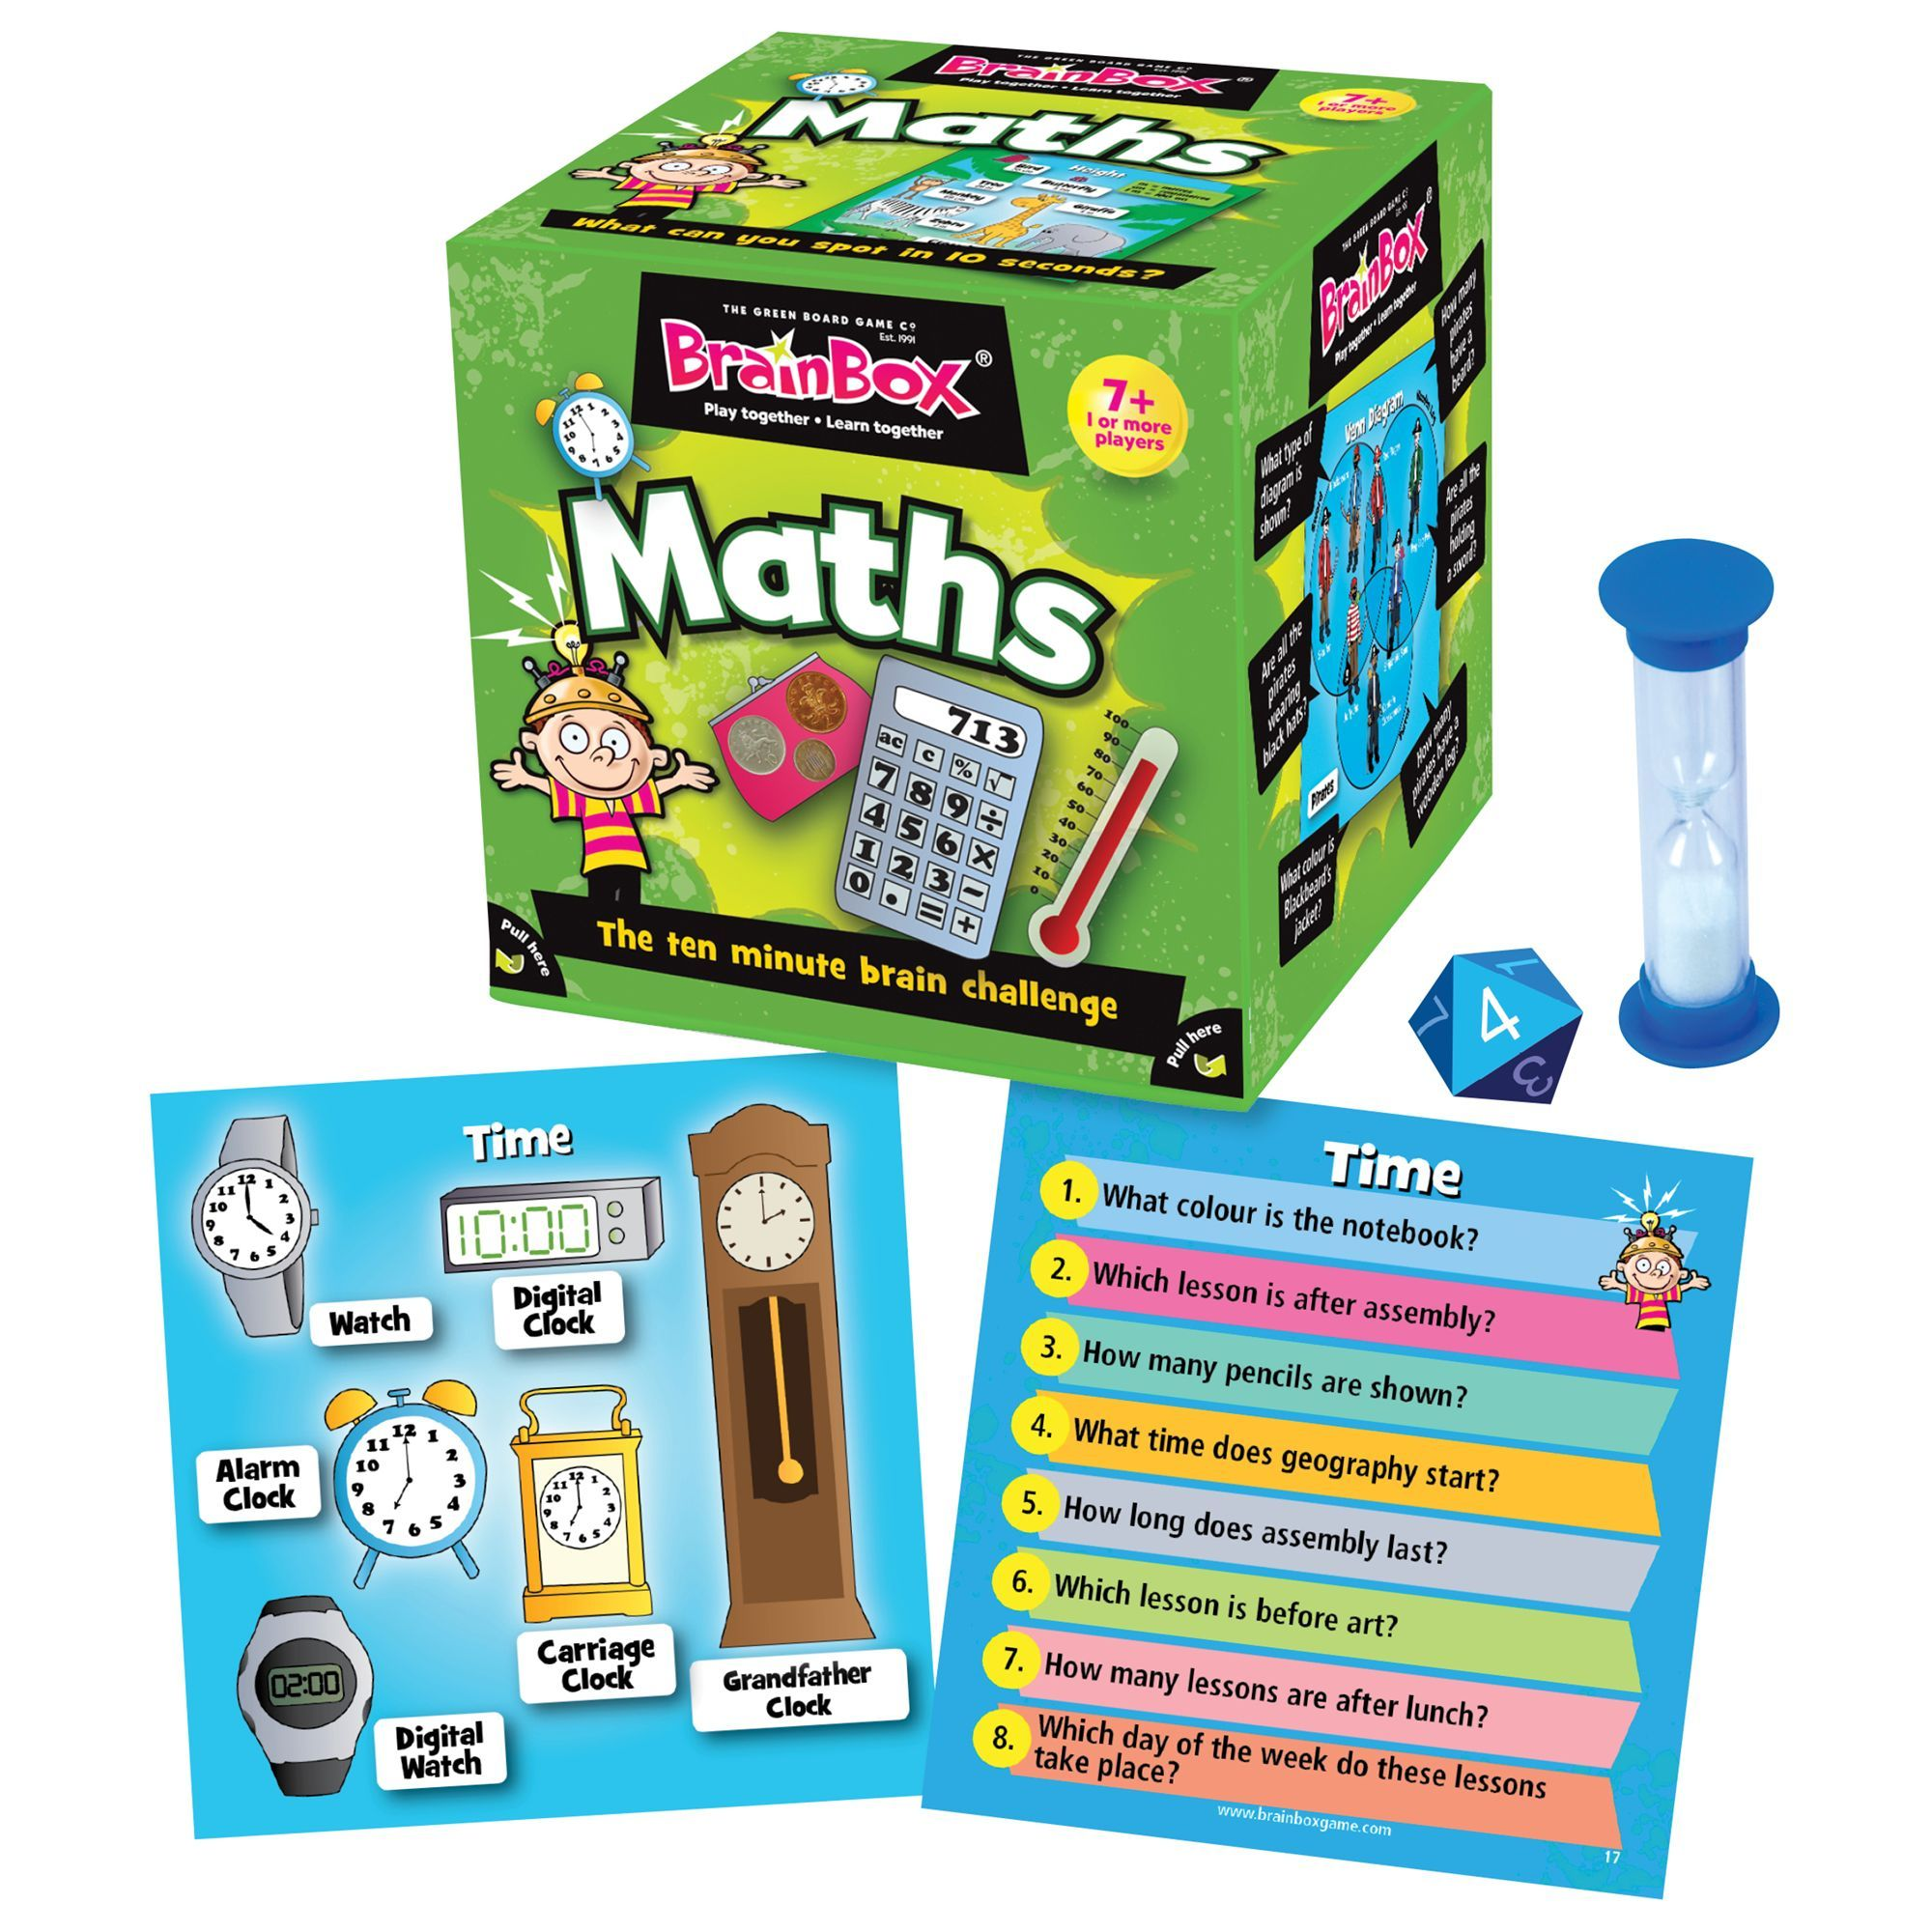 BrainBox Maths Memory Game in 2020 Math for kids, Memory